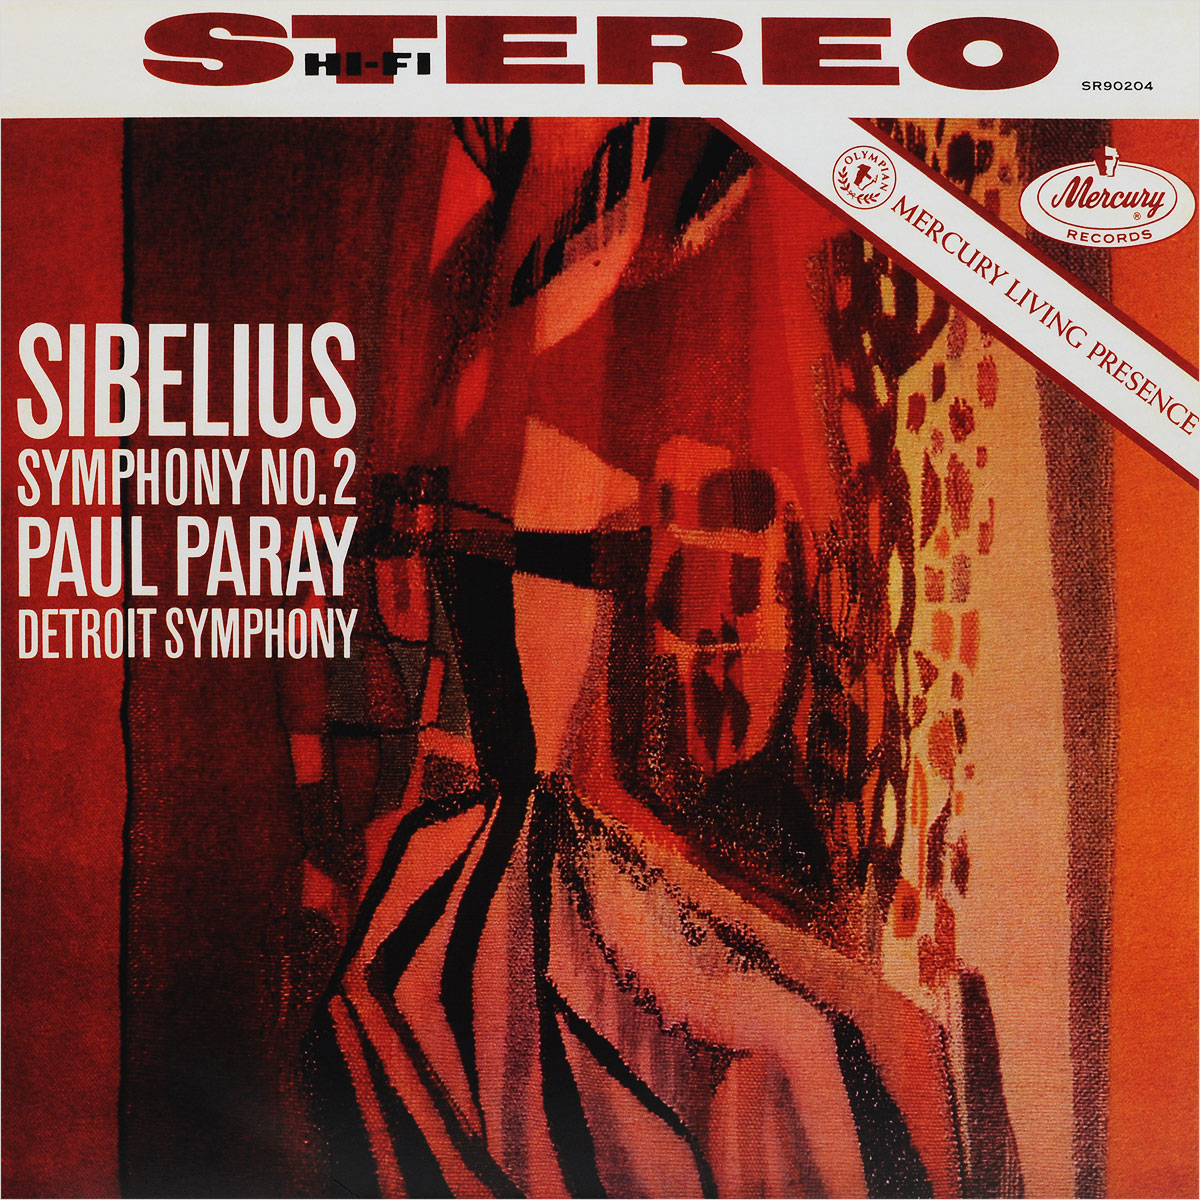 Паул Парей,Ян Сибелиус,Detroit Symphony Orchestra Paul Paray. Sibelius. Symphony No.2 (LP) тромбоун шорти trombone shorty parking lot symphony lp